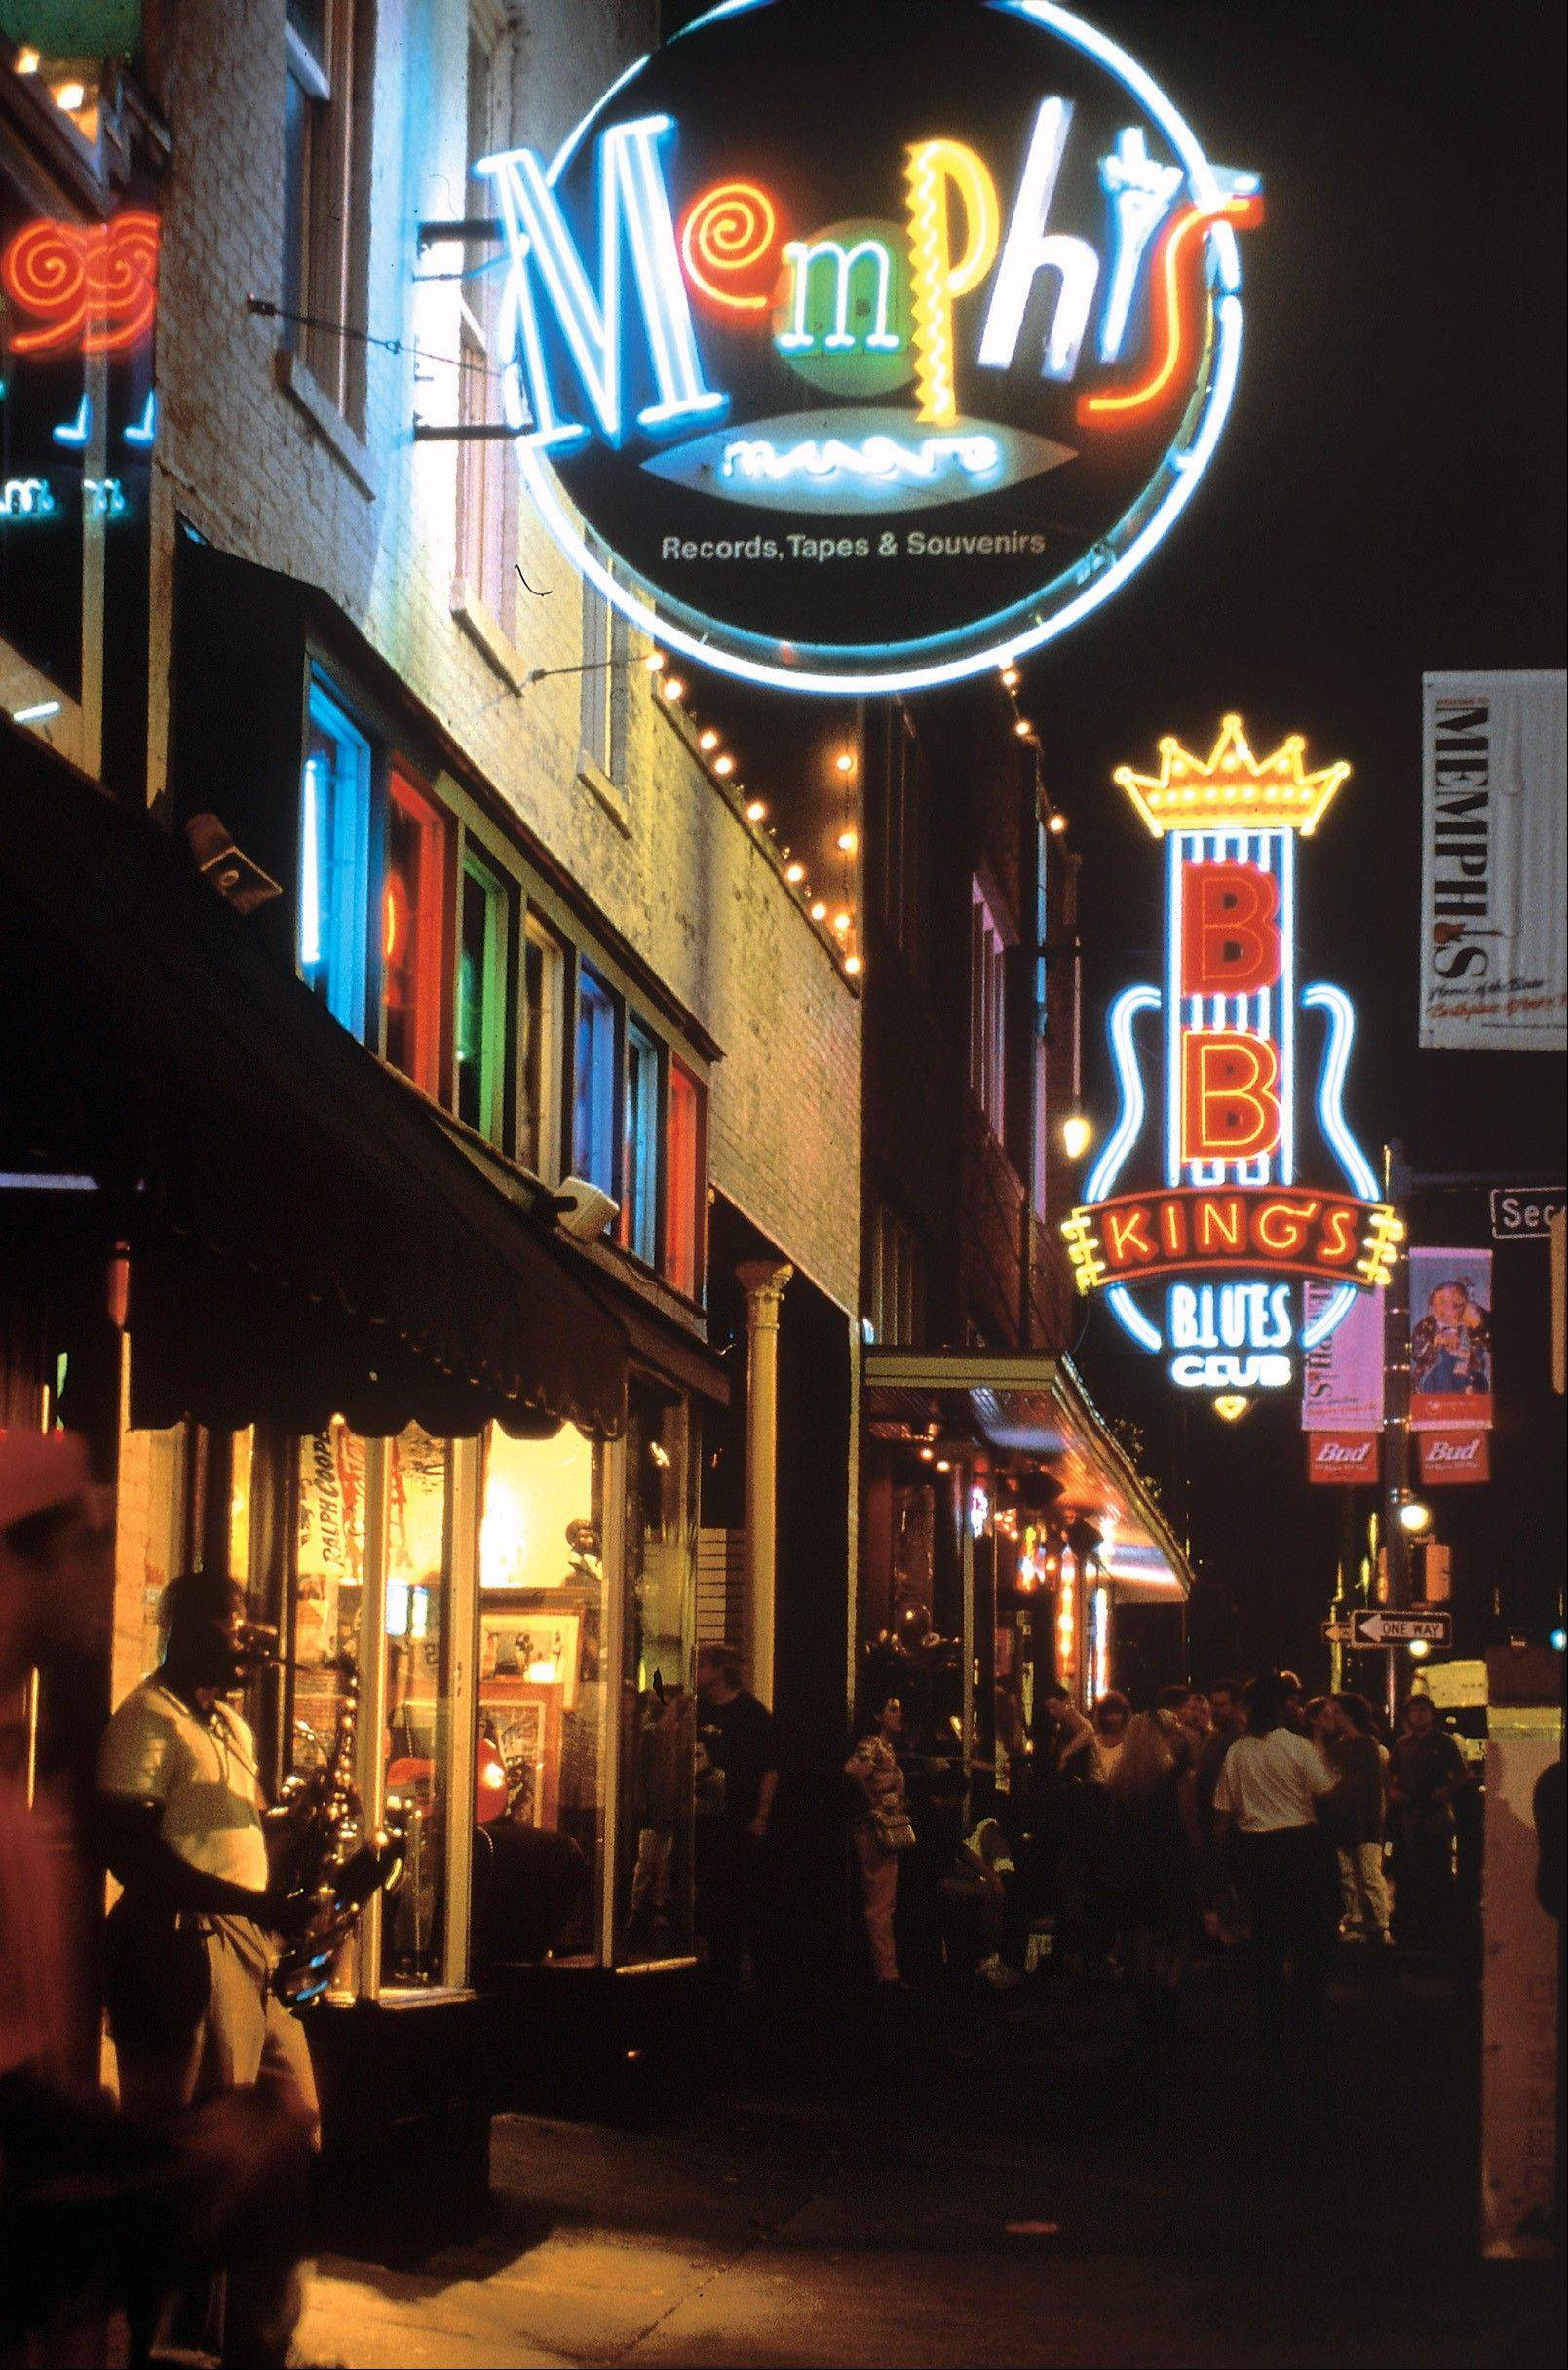 Visitors to Memphis can stroll along Beale Street, home to blues bars, barbecue restaurants, gift shops and dance clubs with a long history of influencing American music.